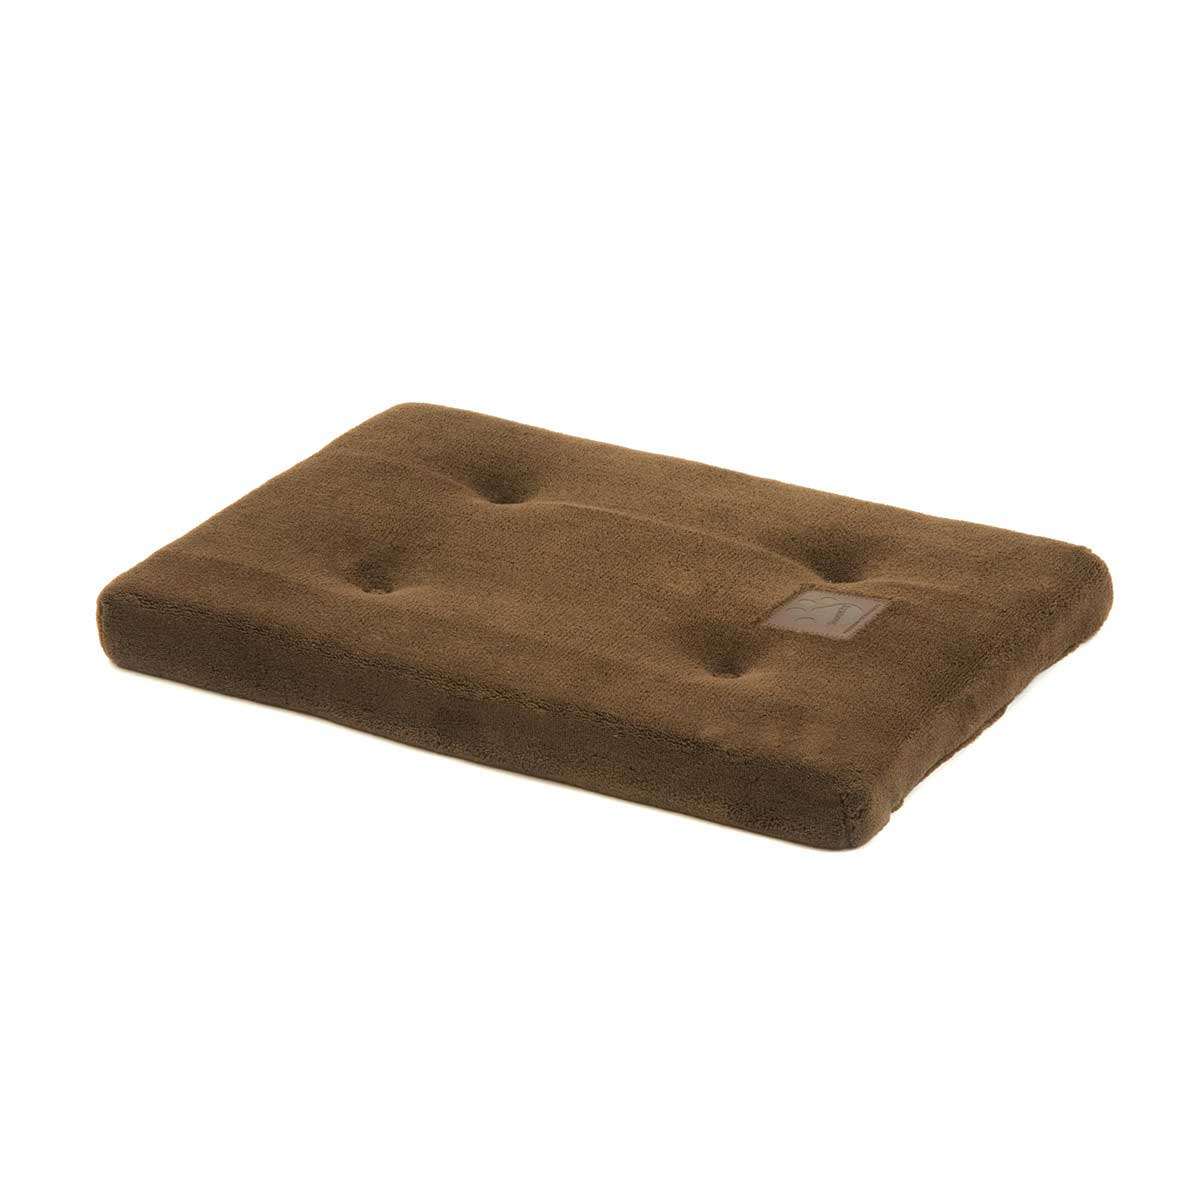 Snoozzy Chocolate Pet Mattress for Crates 35 inches by 21.5 inches